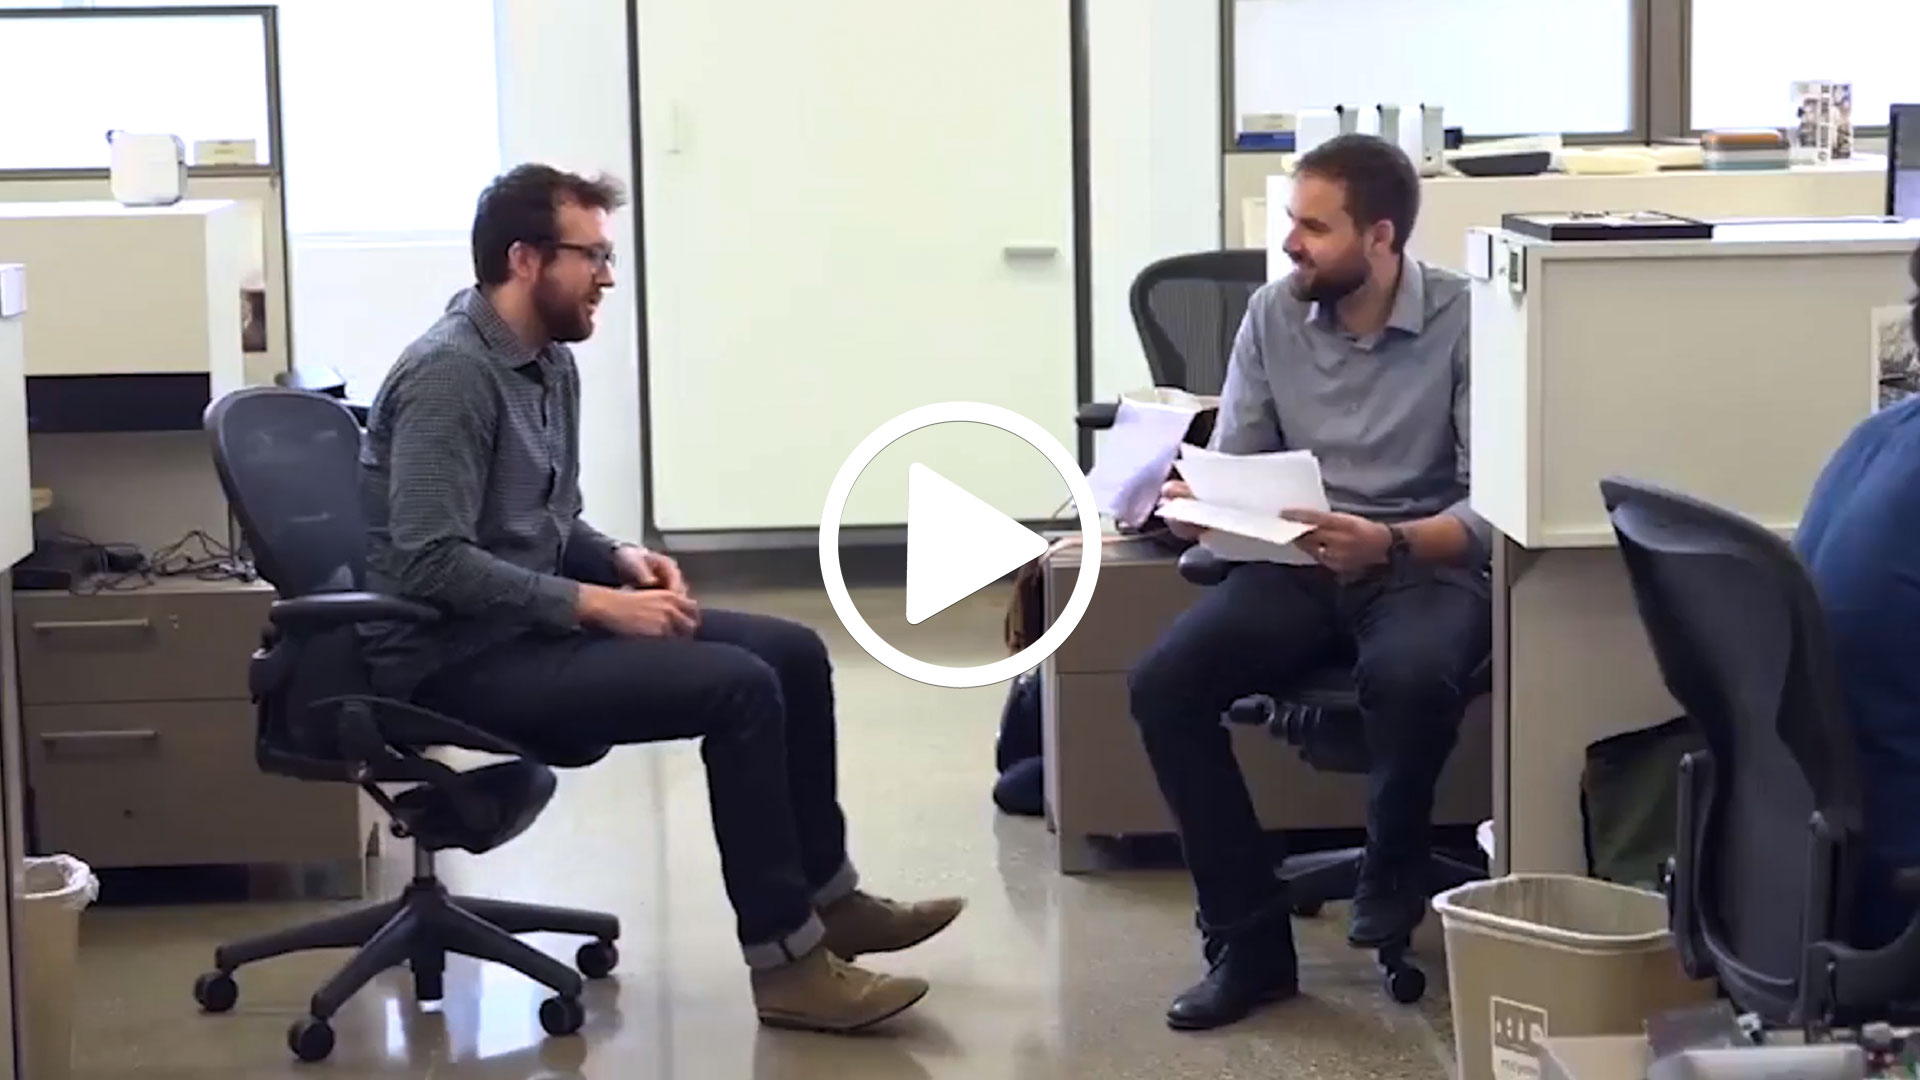 Watch our careers video for available job opening Searching for a Senior Manager, eCommerce Division Analytics in Hoboken, NJ